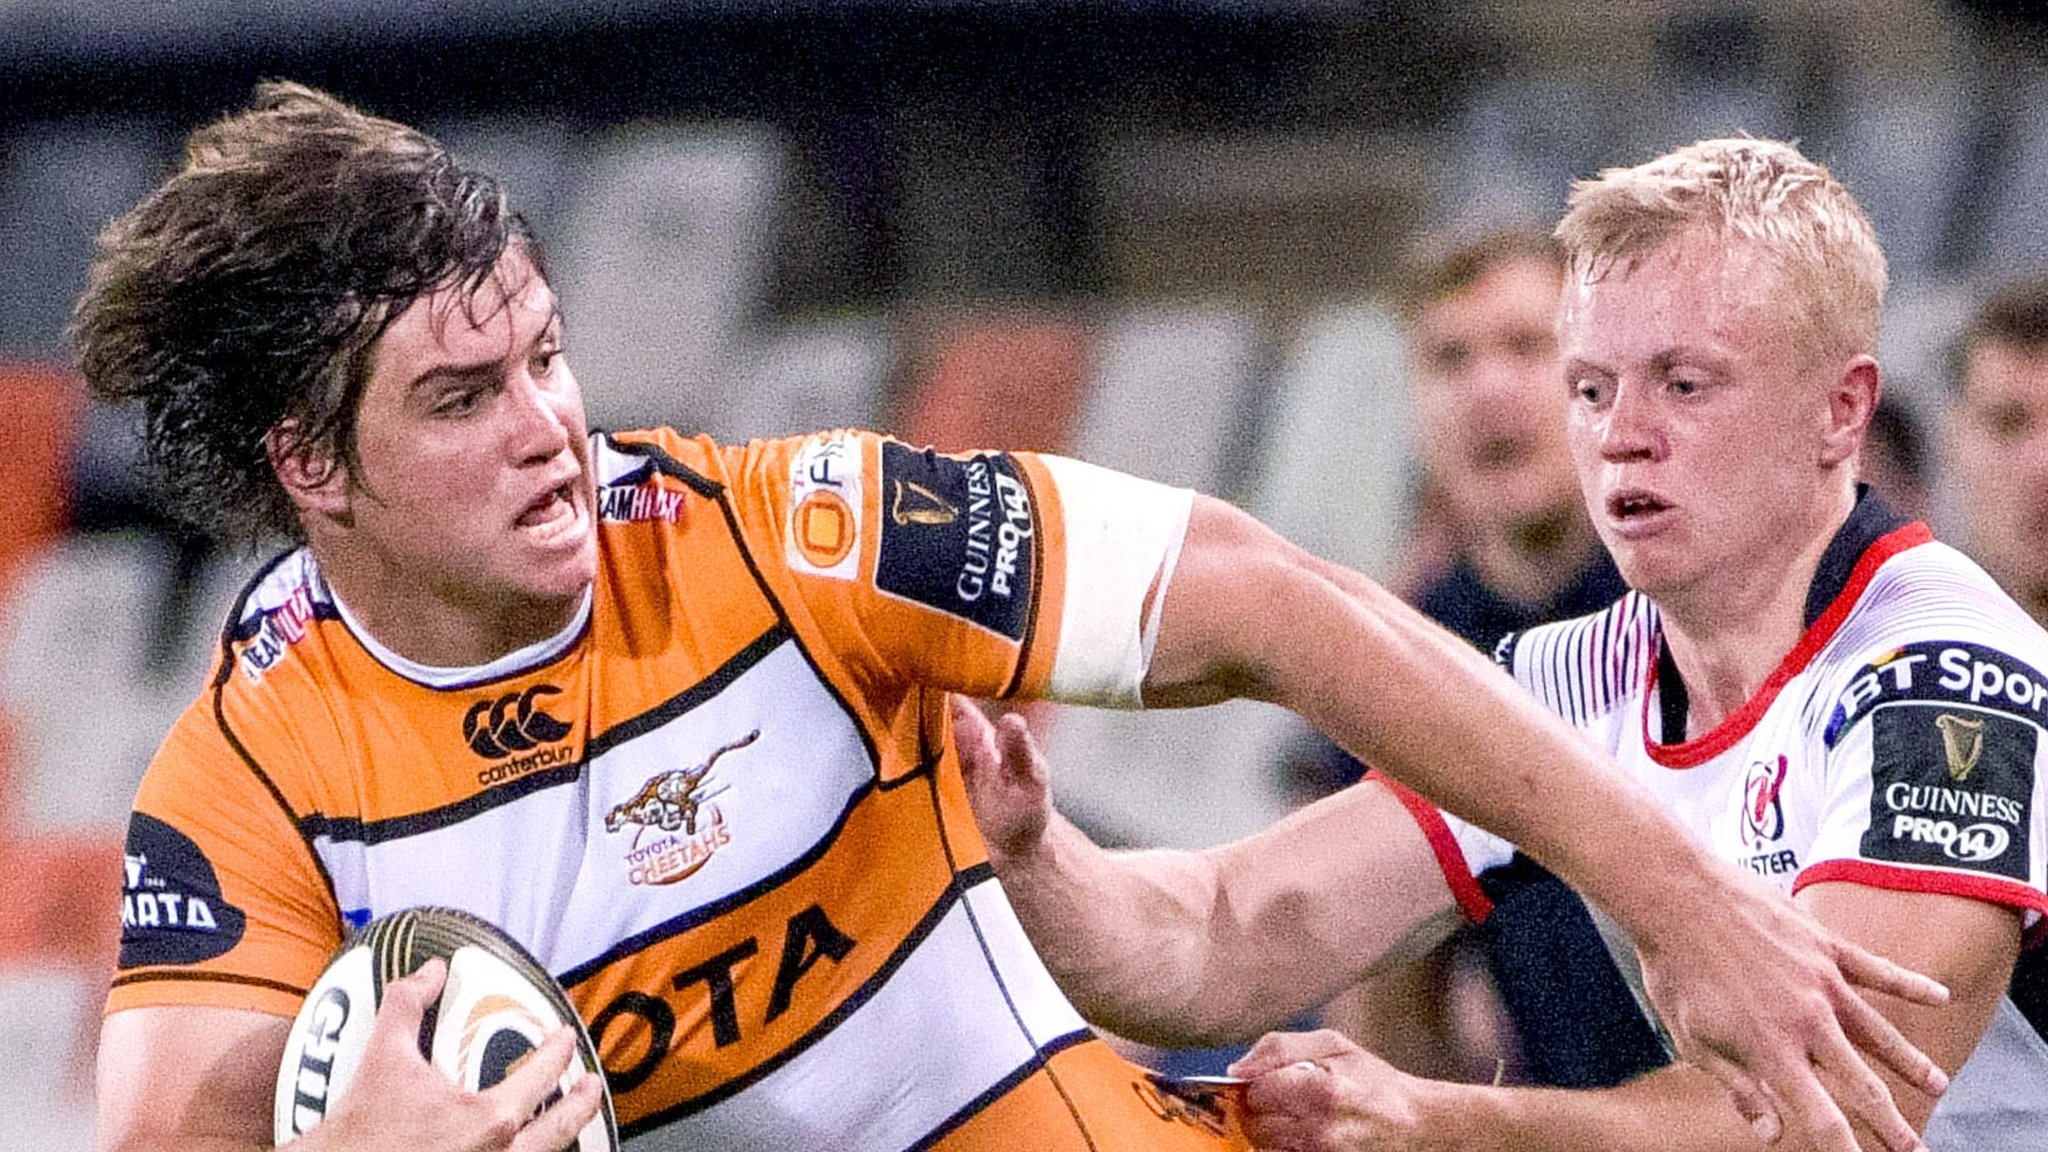 Pro14: Last-gasp Ulster earn 39-39 draw with Cheetahs